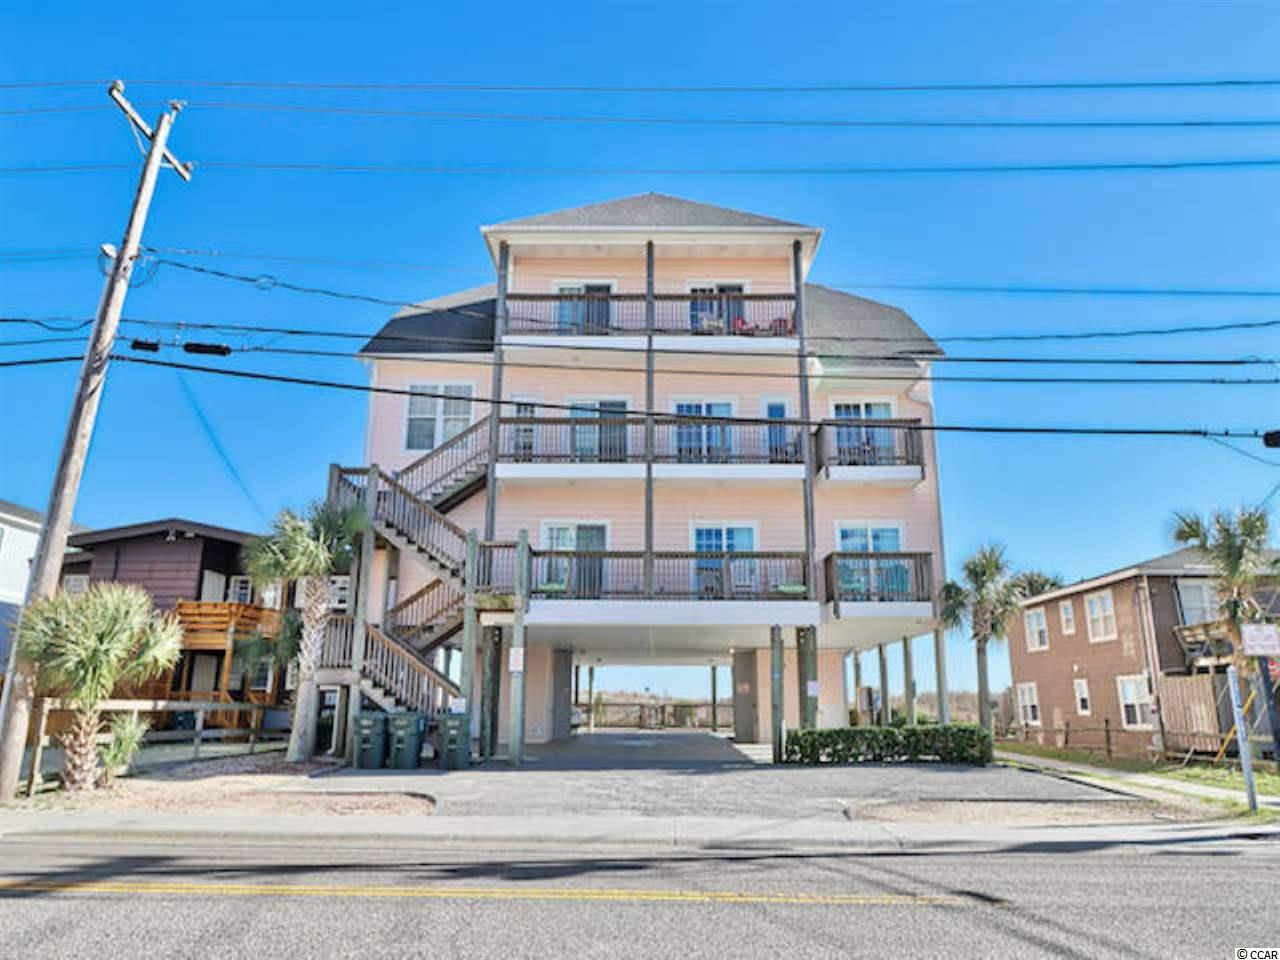 Introducing a wonderful 8 bedroom, 8 bath, oceanfront condo in the popular Cherry Grove area of North Myrtle Beach! Just steps from the beach, this luxury unit features spectacular ocean views, multiple deck areas, large bedrooms most with en-suite baths, a modern kitchen with granite counters and breakfast bar, an enormous family room/recreation room, and a private patio with a pool. Over 4000 square feet, this condo provides plenty of living, recreation, and entertainment space. The location provides easy access to major roads, just minutes from all the shopping dining and entertainment the Grand Strand has to offer!